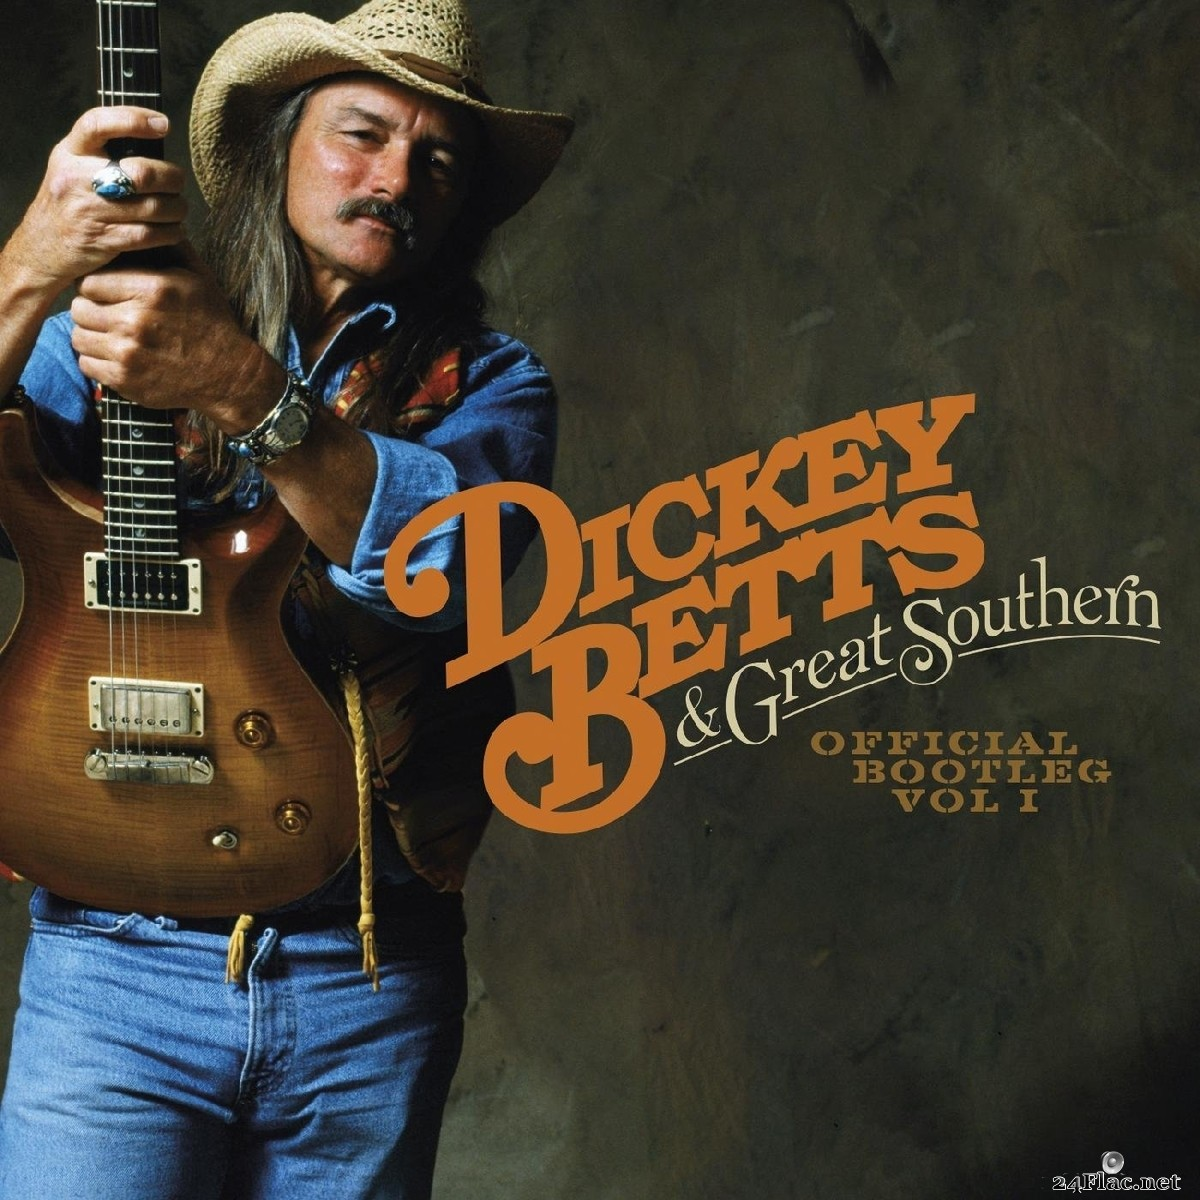 Dickey Betts - Official Bootleg Vol. 1 (2021) FLAC